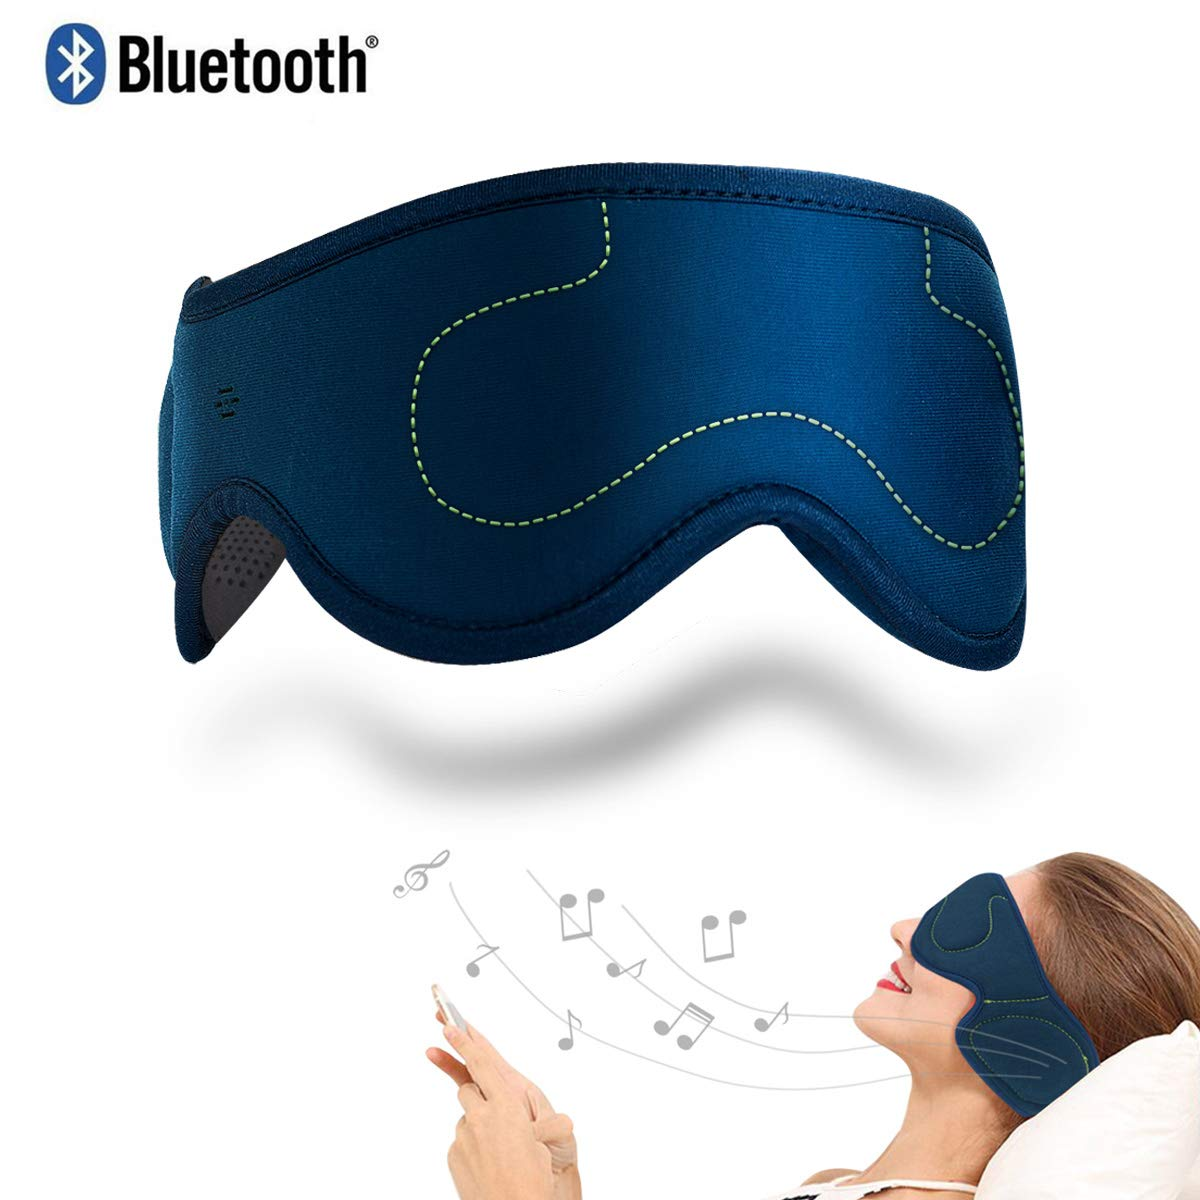 ACOTOP Bluetooth Sleep Eye Mask with Wireless Headphones, Best for Back Sleepers, Stereo Speakers Noise Cancelling for Sleep, Air Travel, Meditation and Relaxation (Navy Blue) by ACOTOP